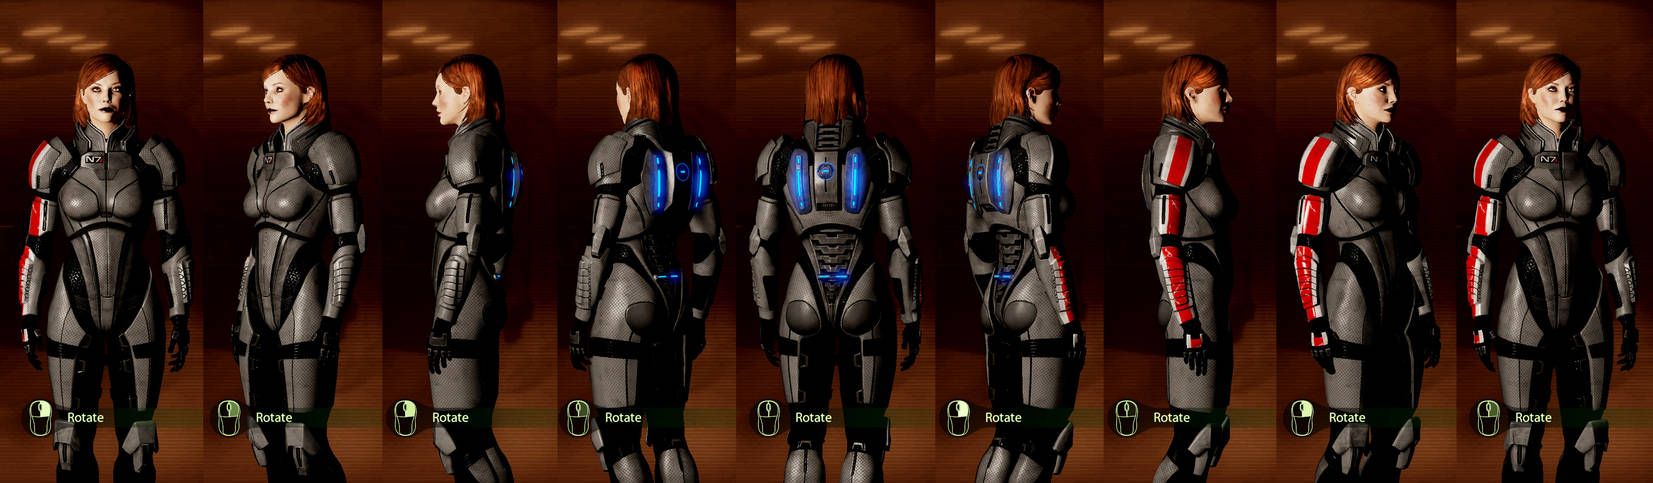 Mass Effect 2: Femshep Armor Reference by JocundaCosplay